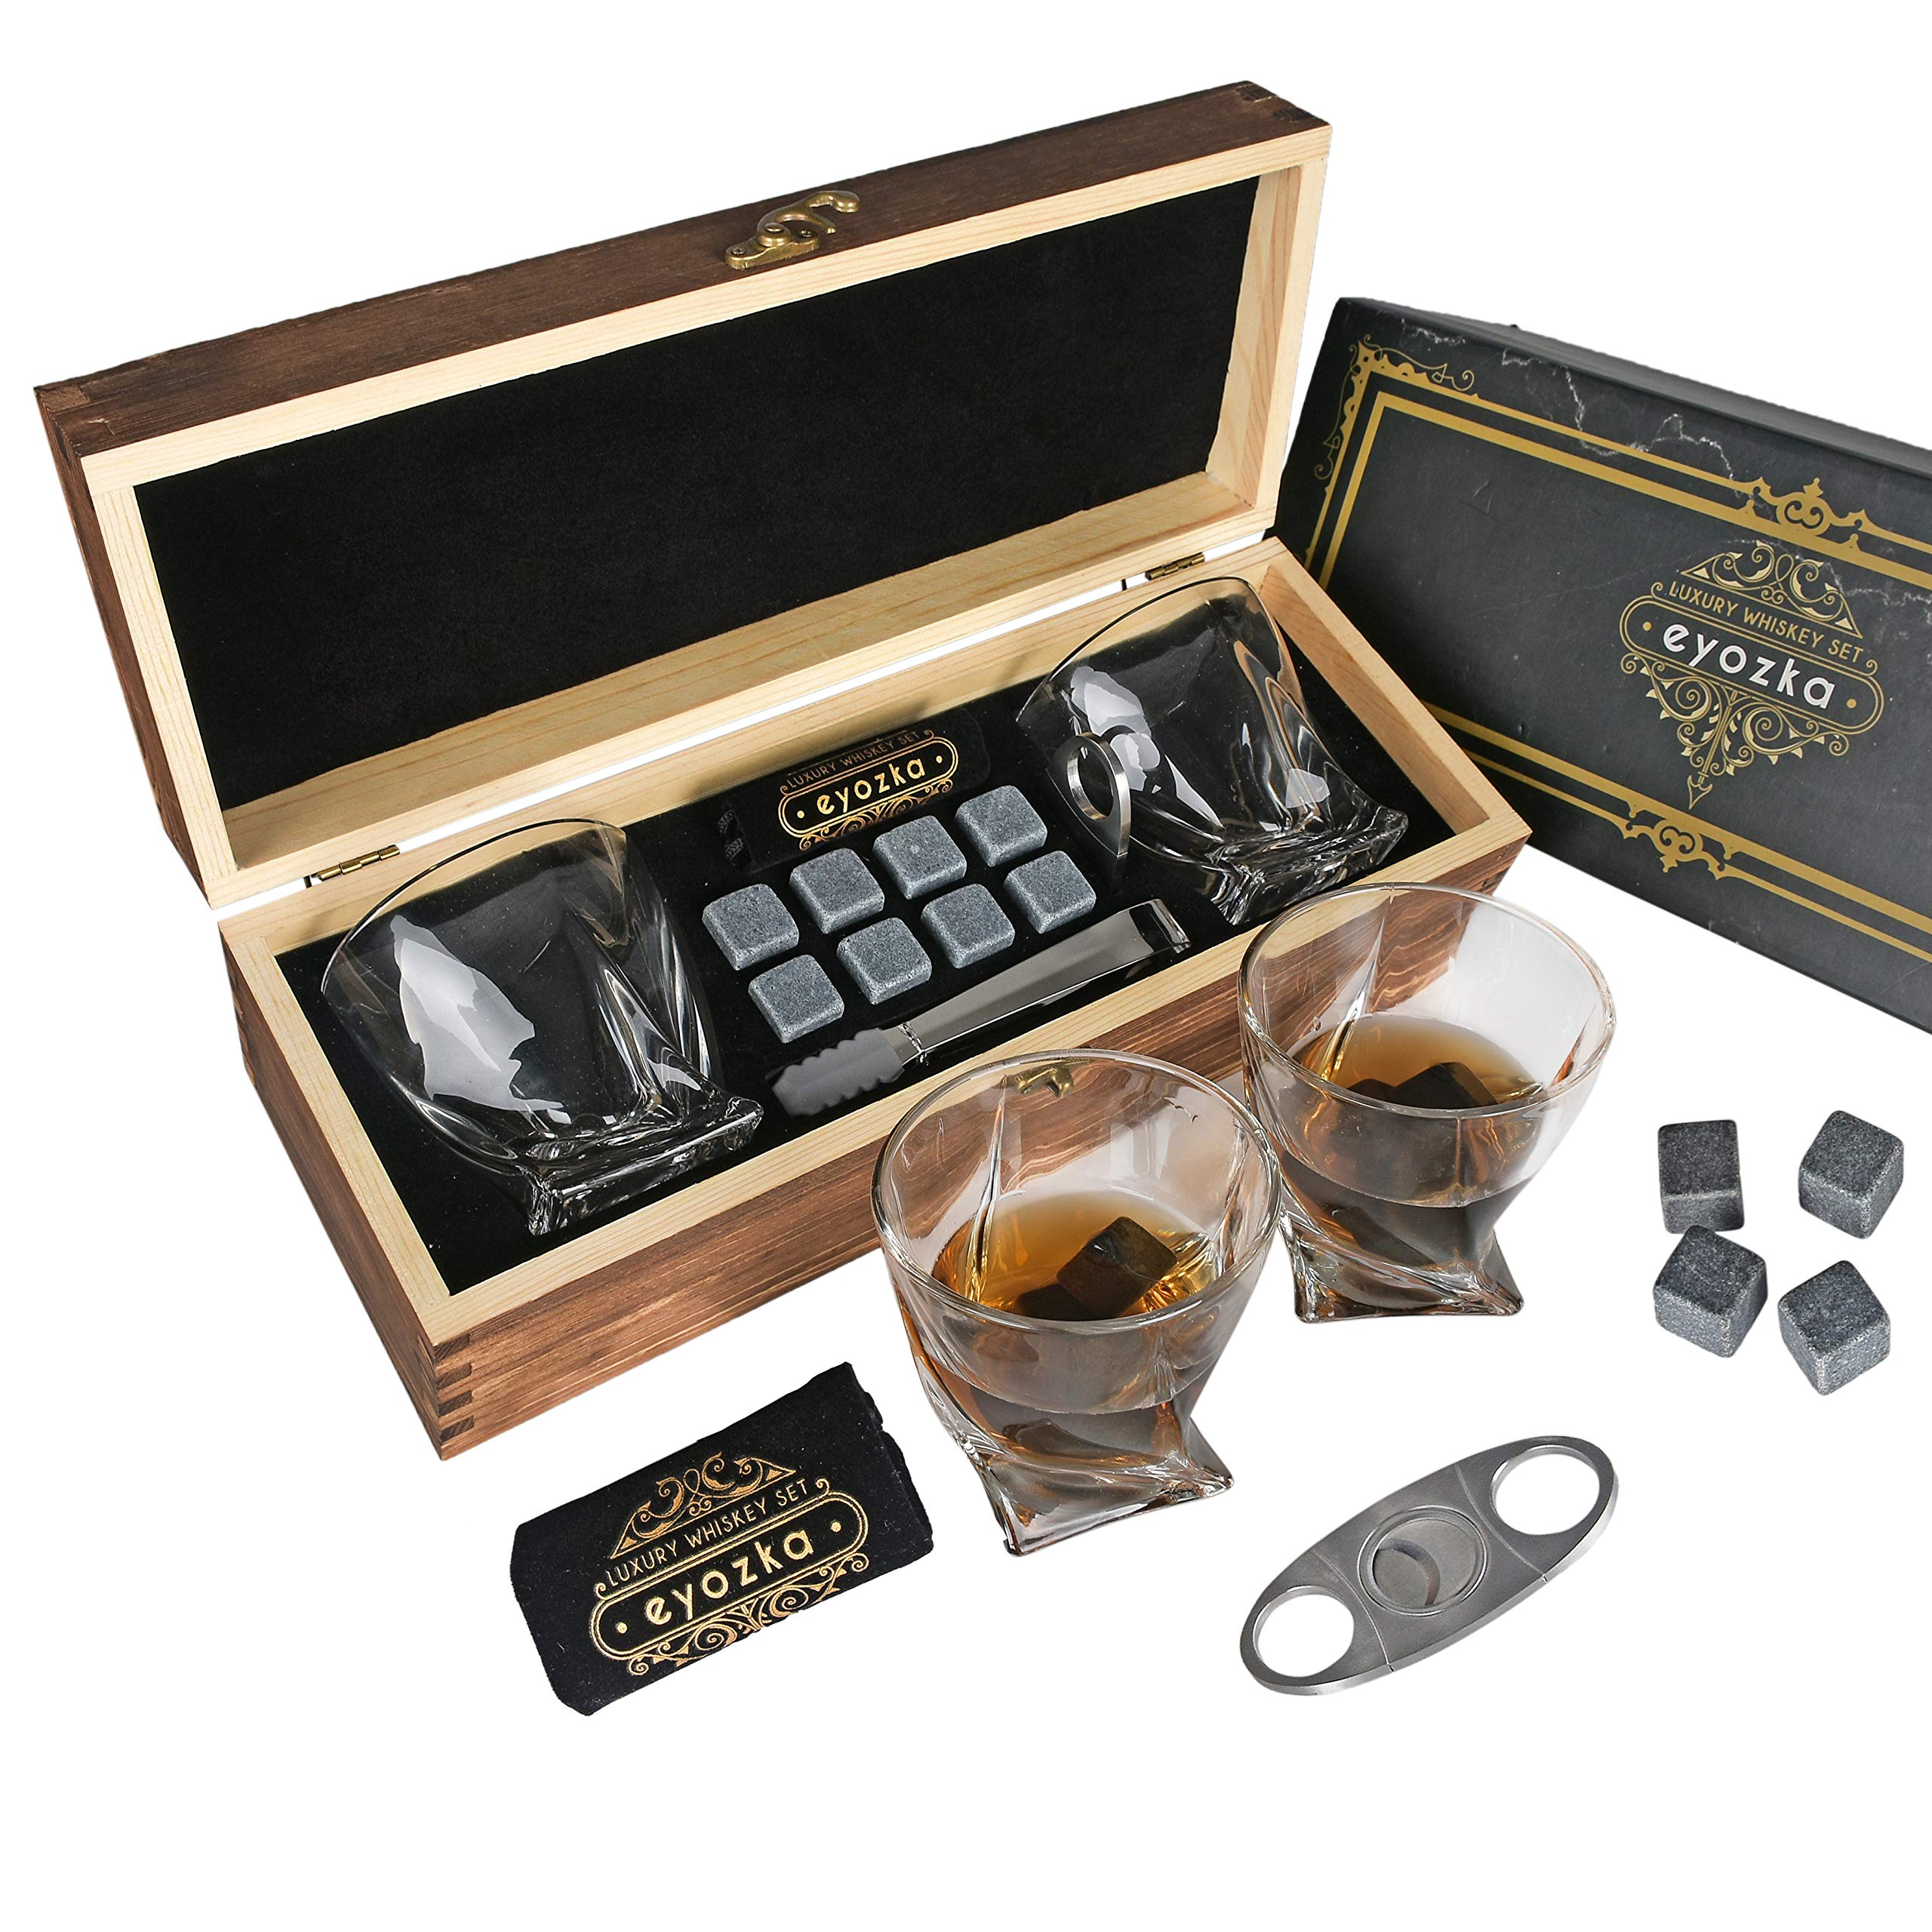 Eyozka Whiskey Glass Set Gift Box - Cigar Cutter and Whiskey Stones Included - Chilling Stones Gift Set - Scotch Bourbon Glasses Bar Accessories - Reusable Ice Cubes - Unique Gifts for Men by Eyozka